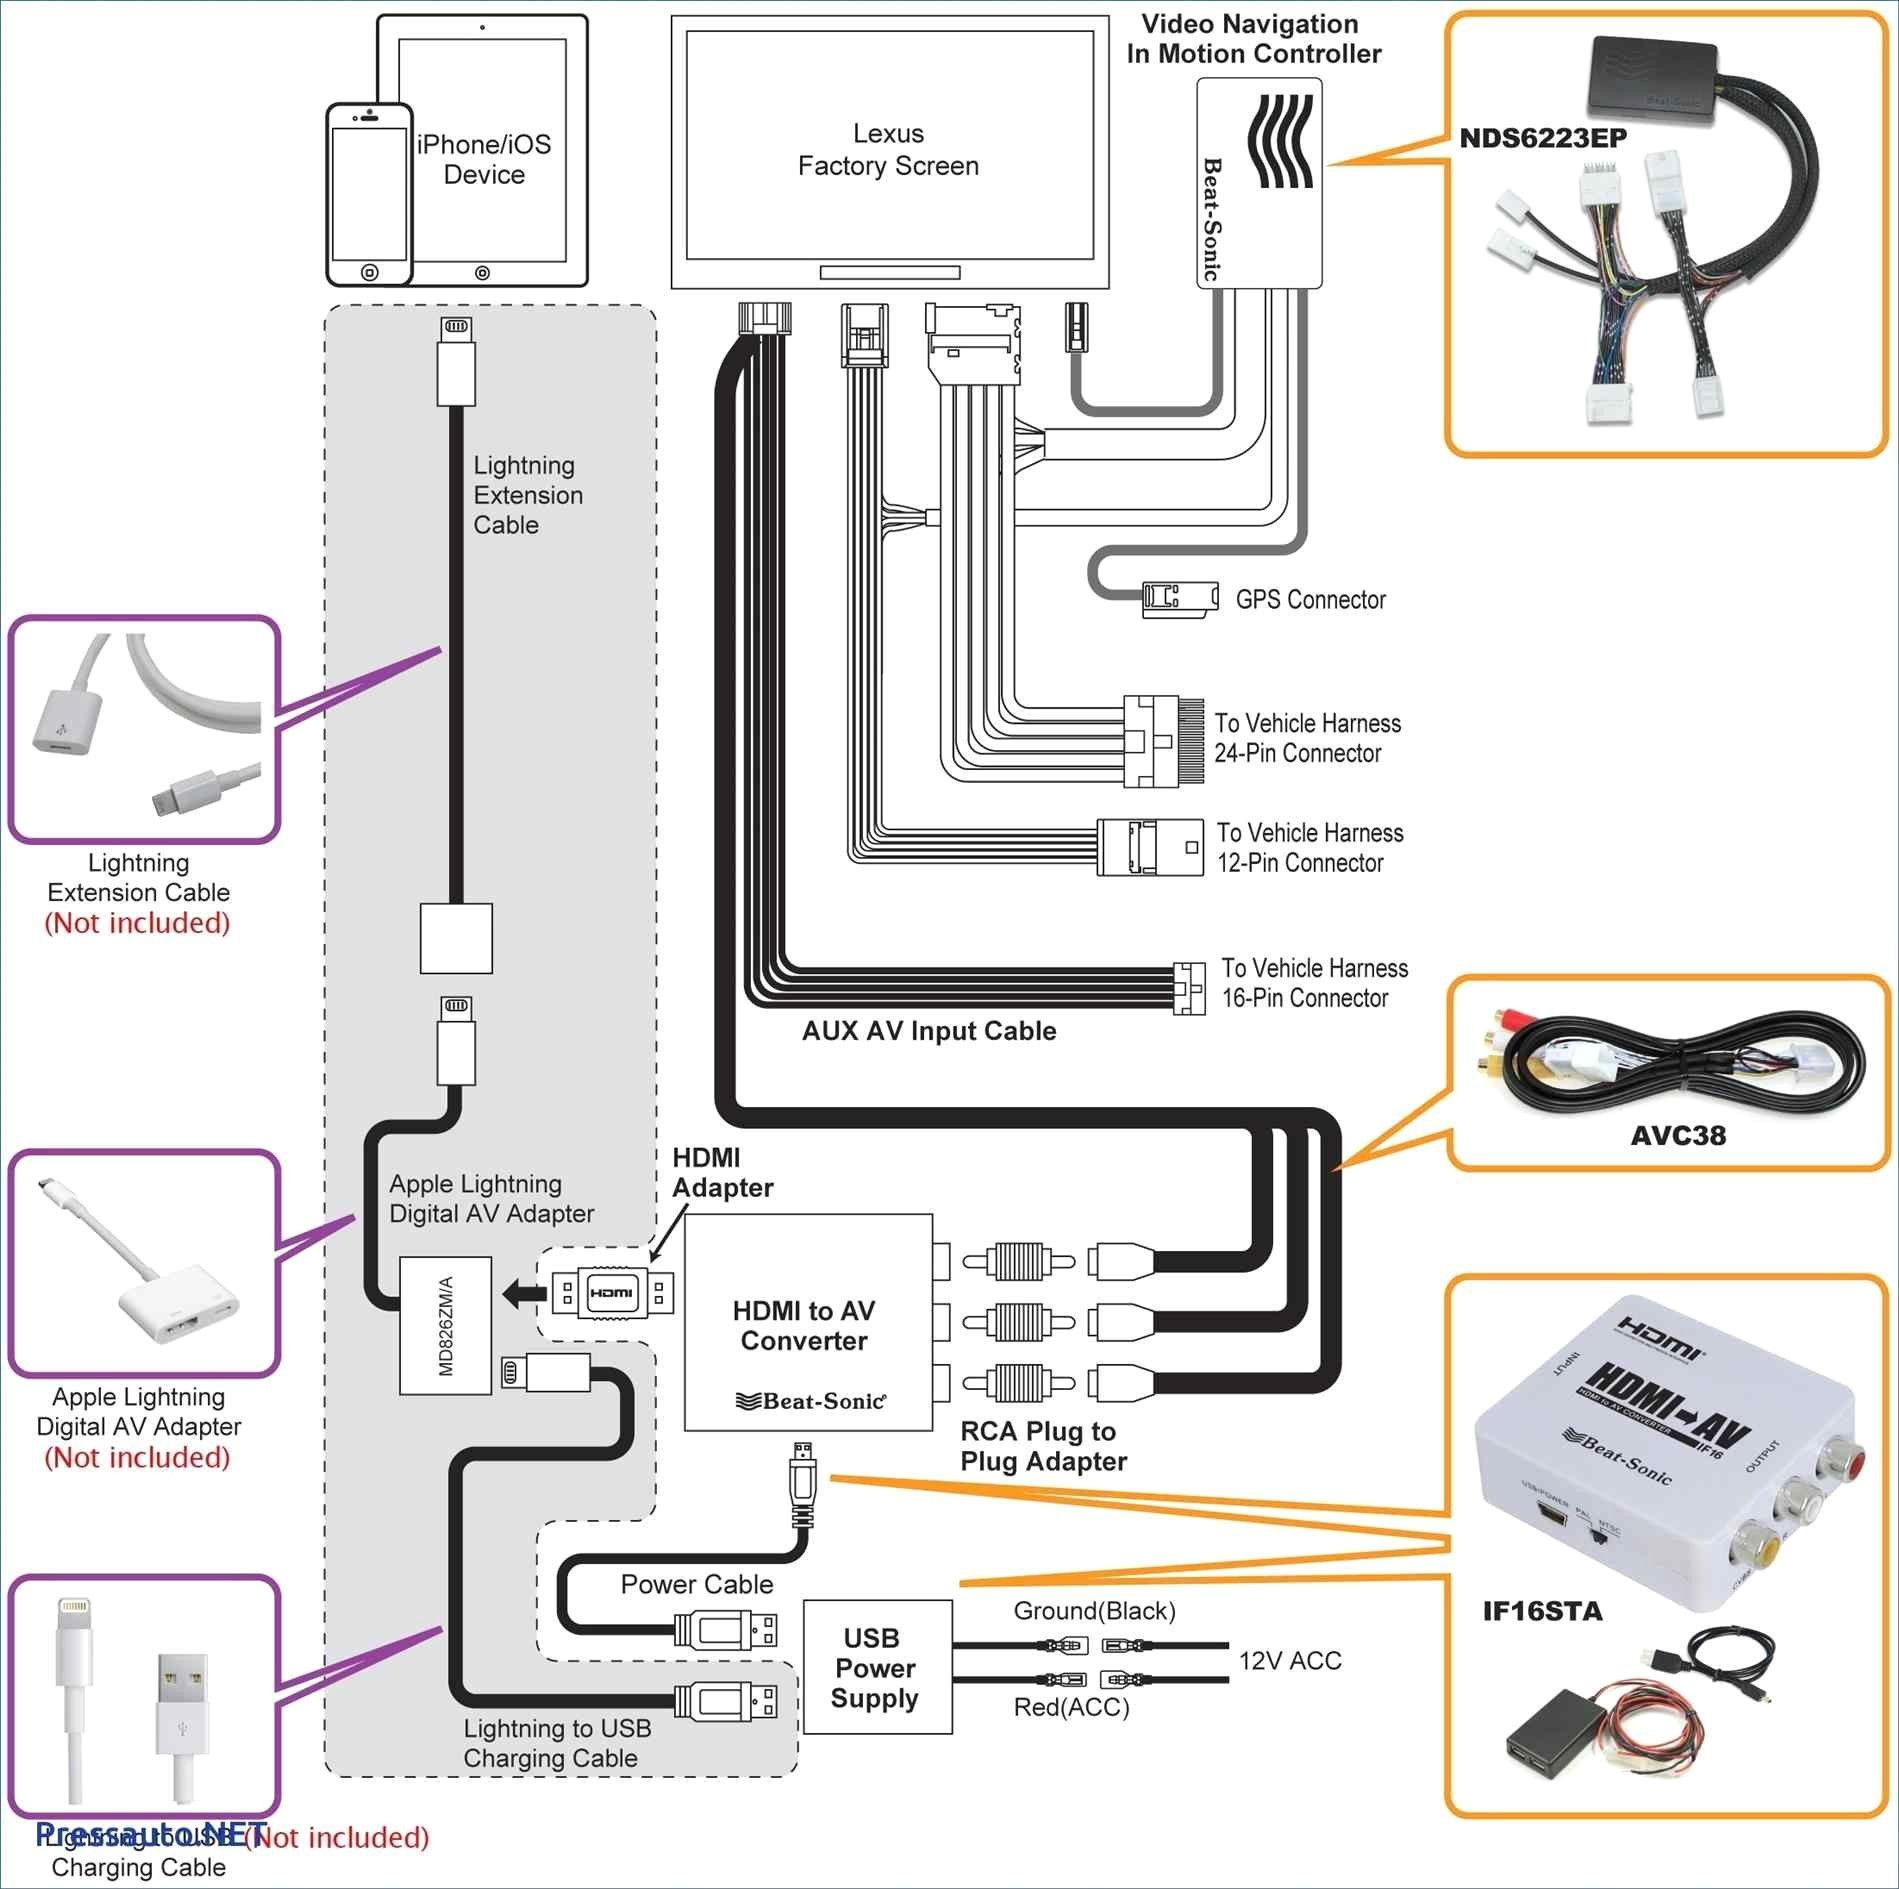 Usb to Sata Hdd Wiring Diagram Usb to Sata Adapter Wiring Diagram Gm Car Wiring Diagram Of Usb to Sata Hdd Wiring Diagram